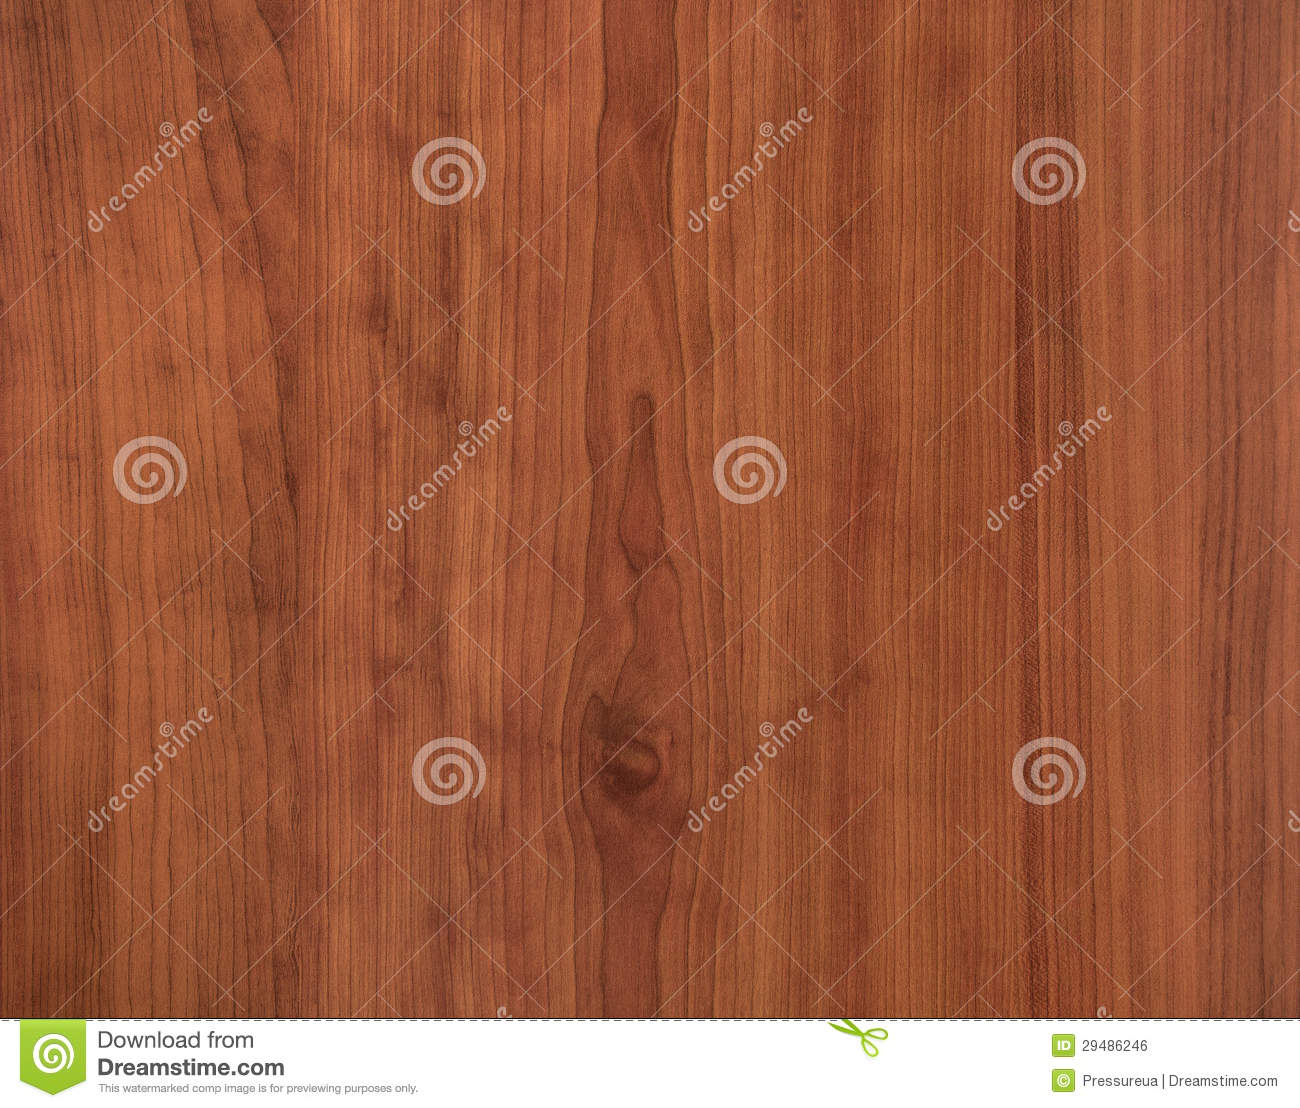 wooden table texture stock photo image of knot knotty 29486246